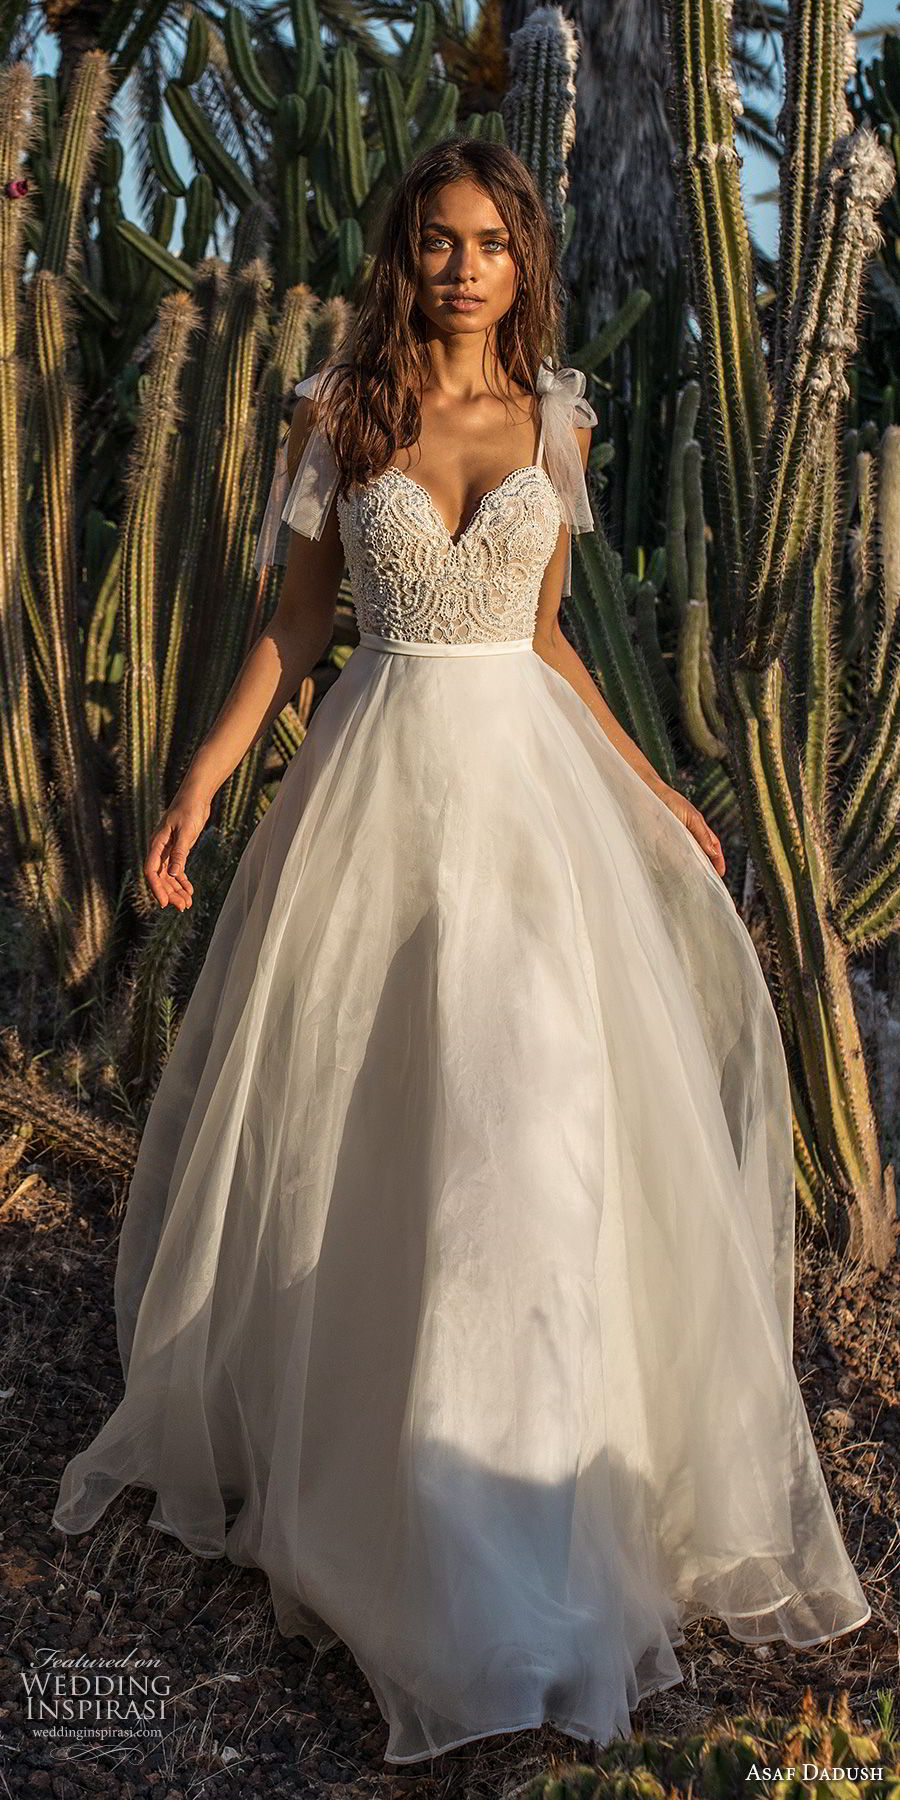 asaf dadush 2018 bridal spaghetti strap sweetheart neckline heavily embellished bodice romantic a line wedding dress open back sweep train (3) mv